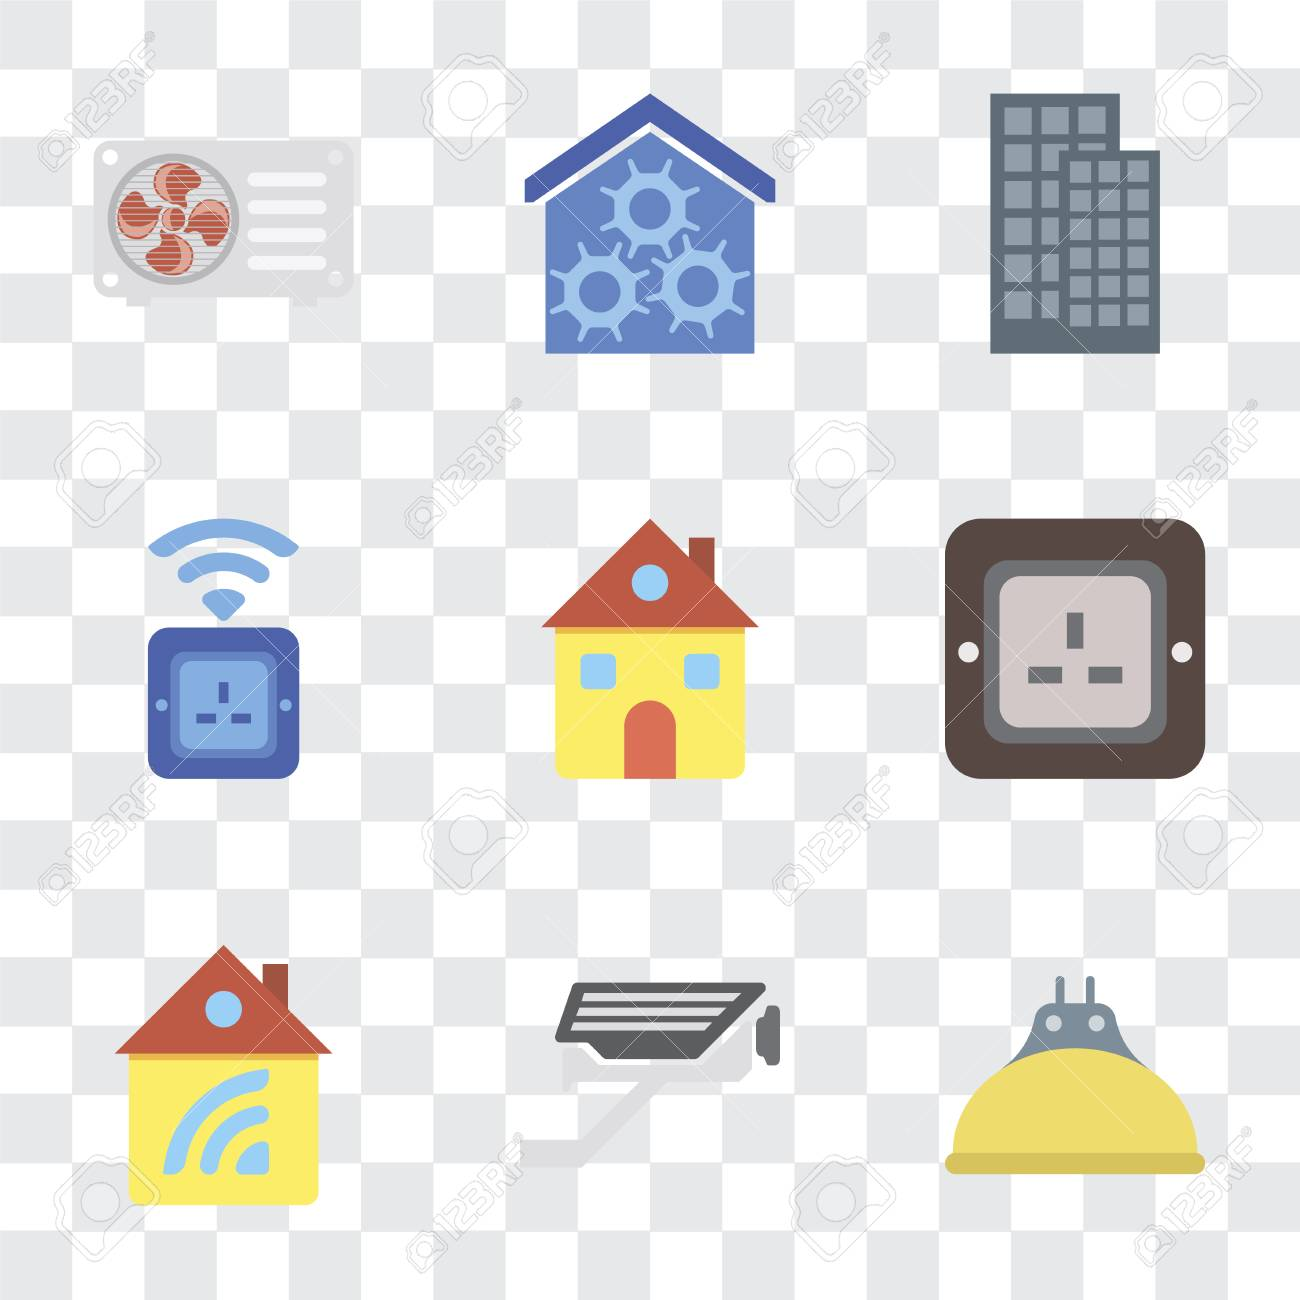 Set Of 9 simple transparency icons such as Lightbulb, Cctv, Home,